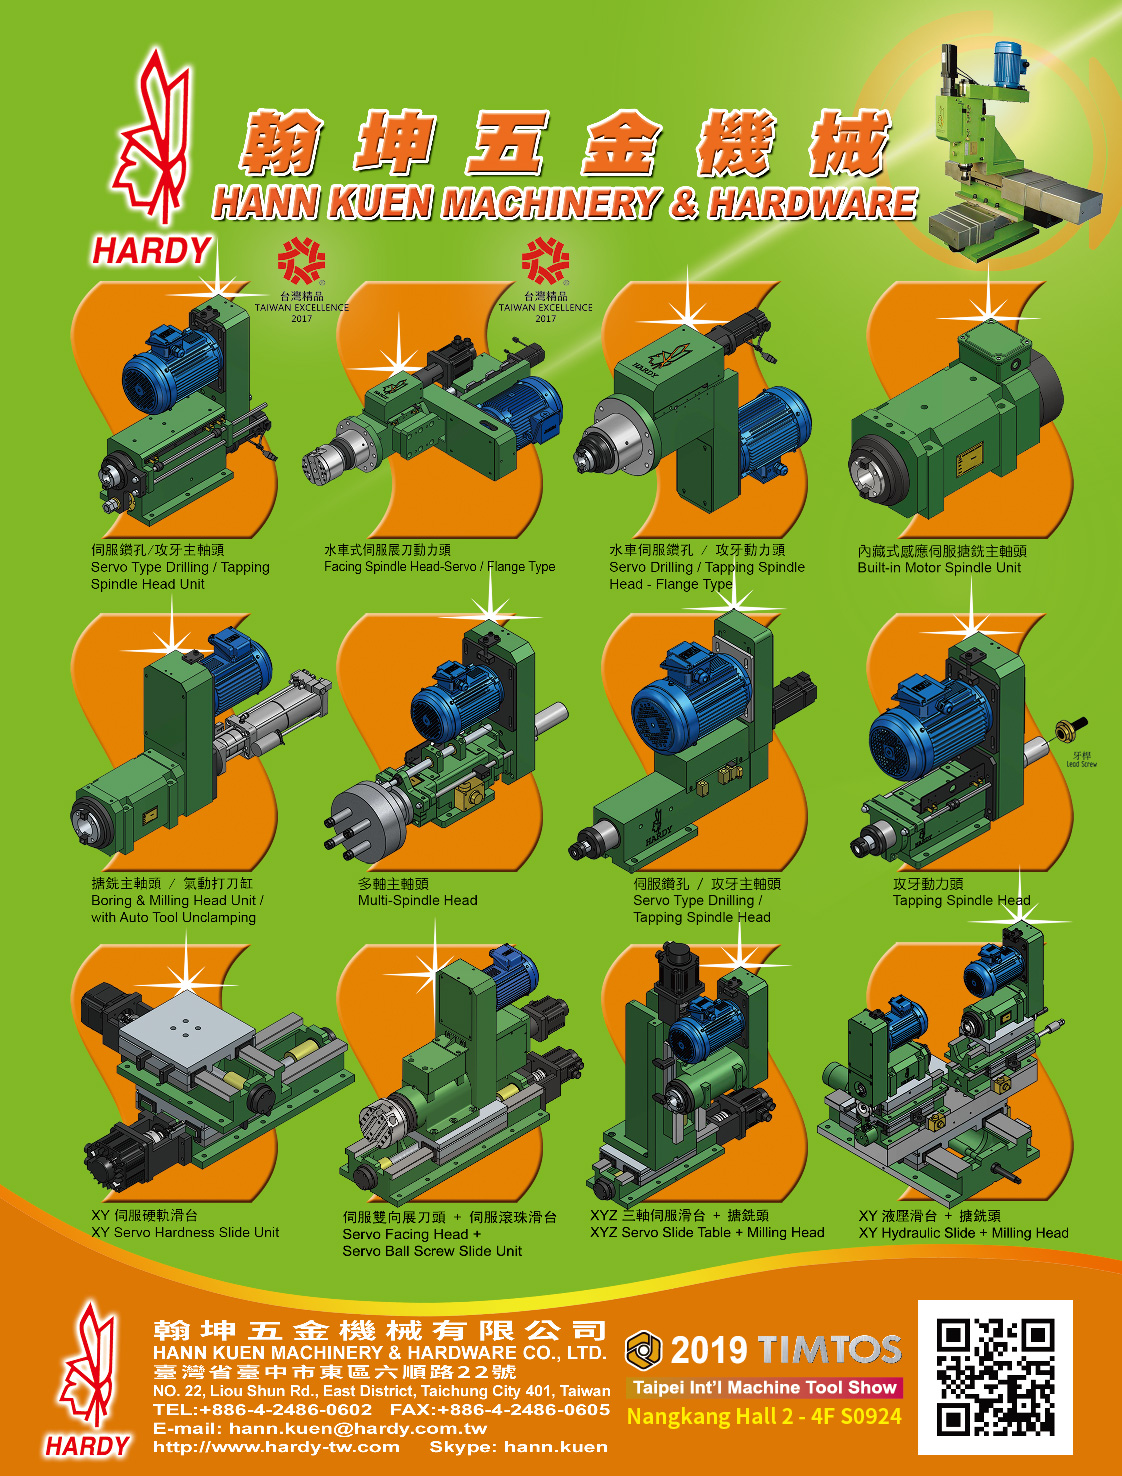 HANN KUEN MACHINERY & HARDWARE CO., LTD.